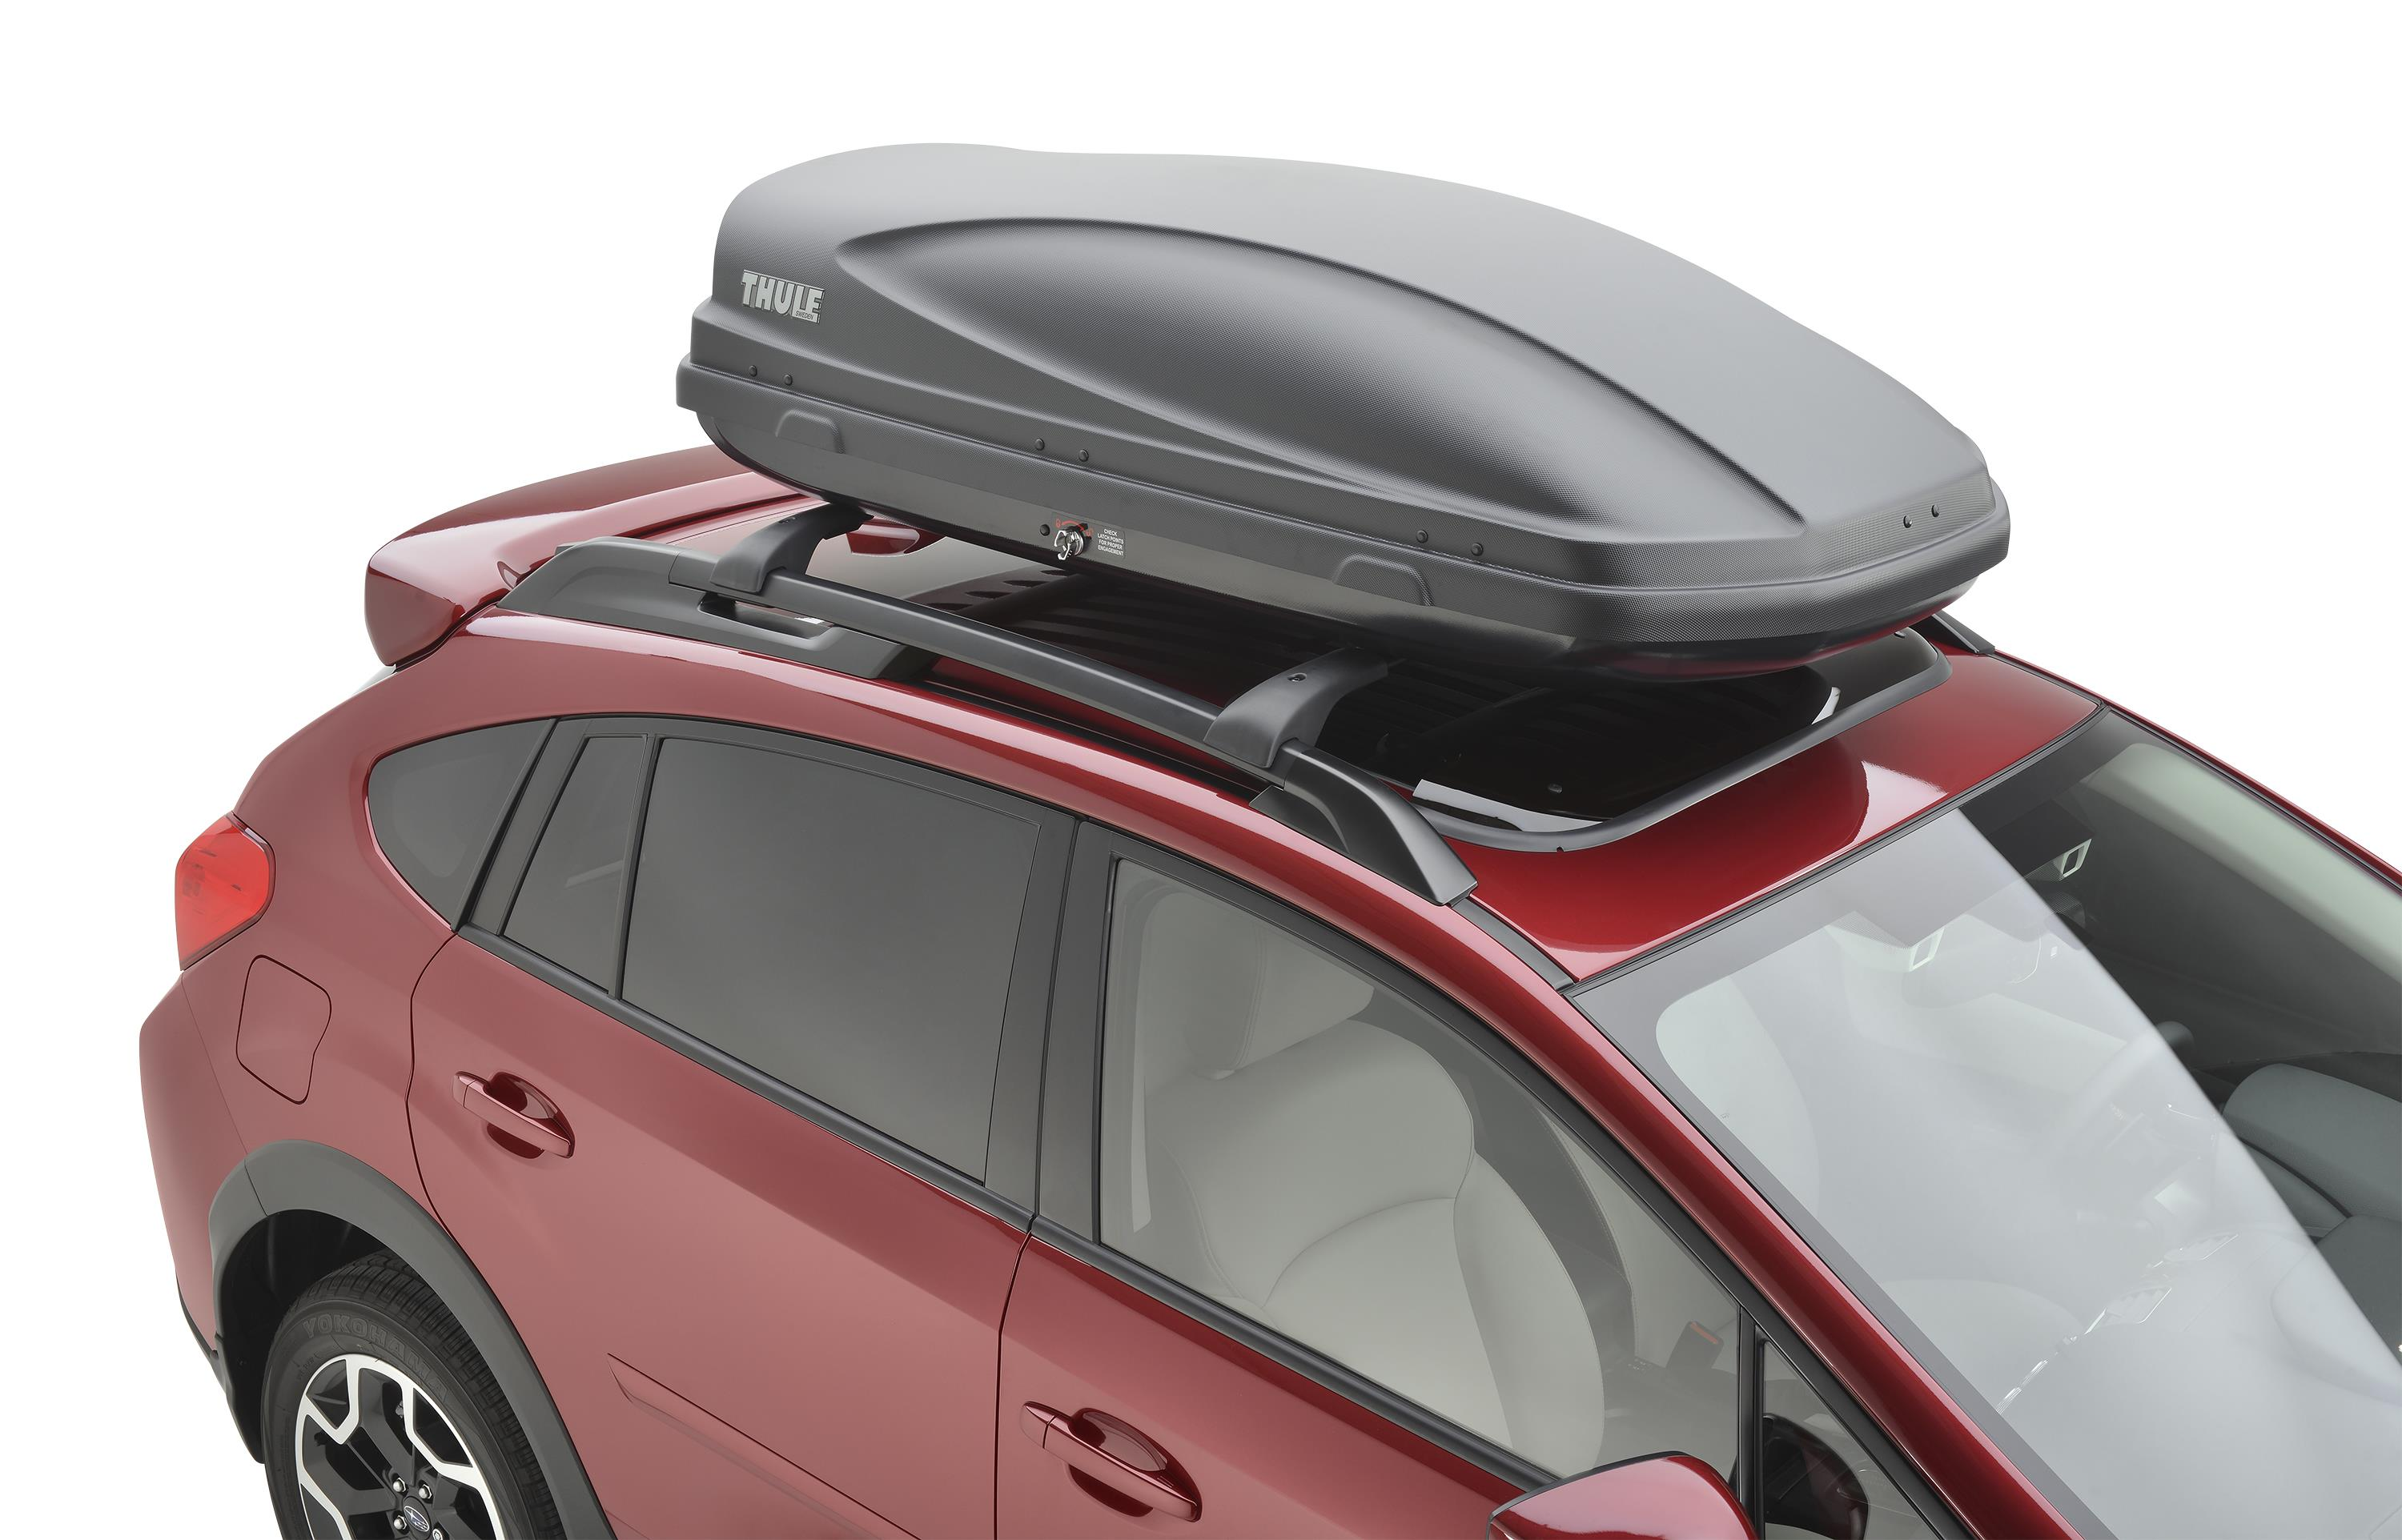 cargo subaru thule outback carrier roof crosstrek parts ascent impreza number provides side rack box accessories luggage accessory cvt limited